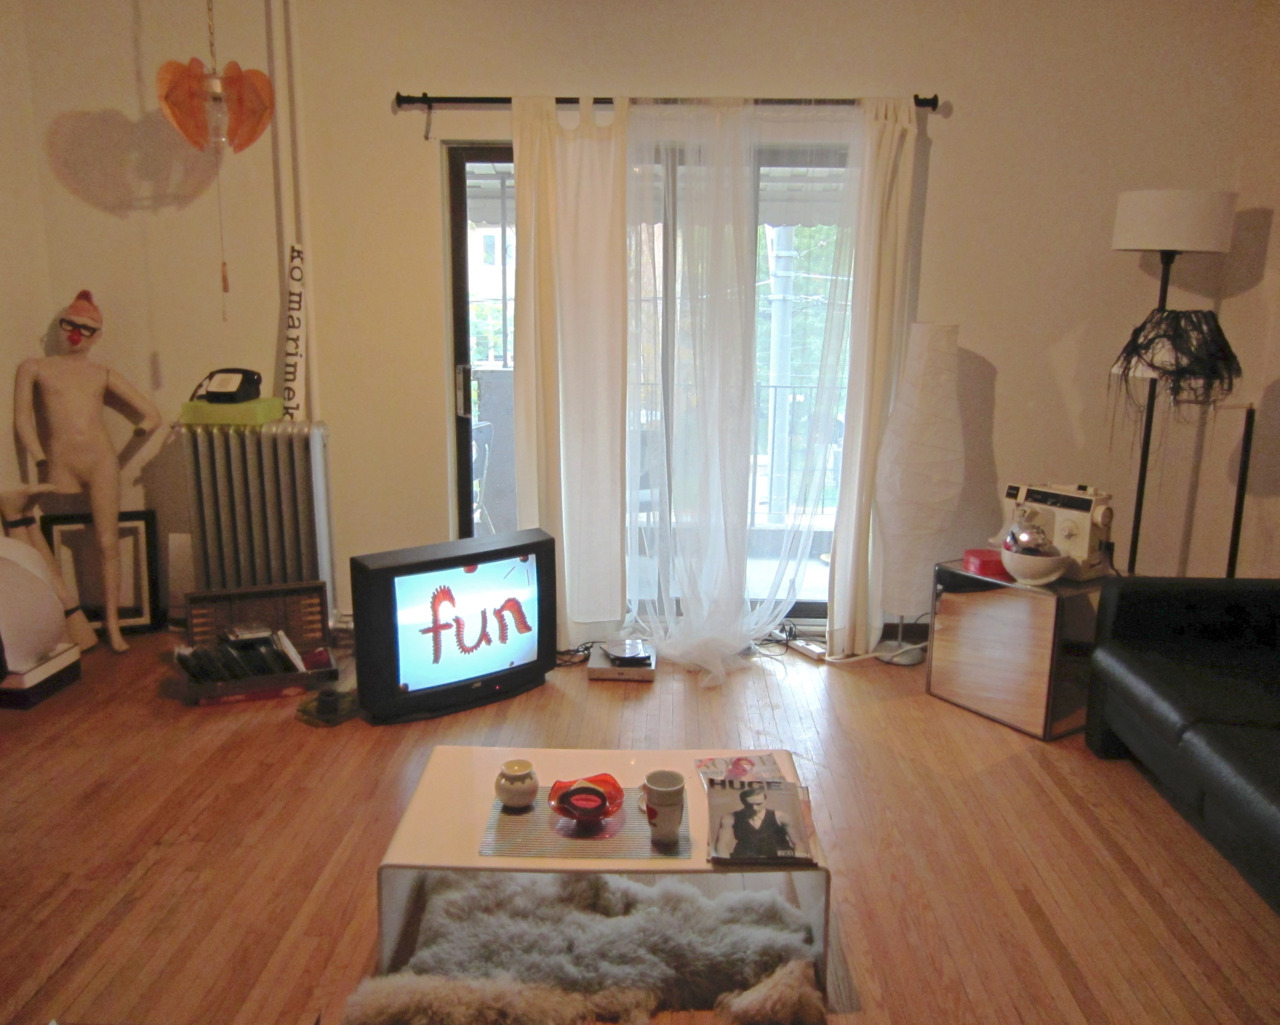 The Ode To: The fun living room. MY HOUSE